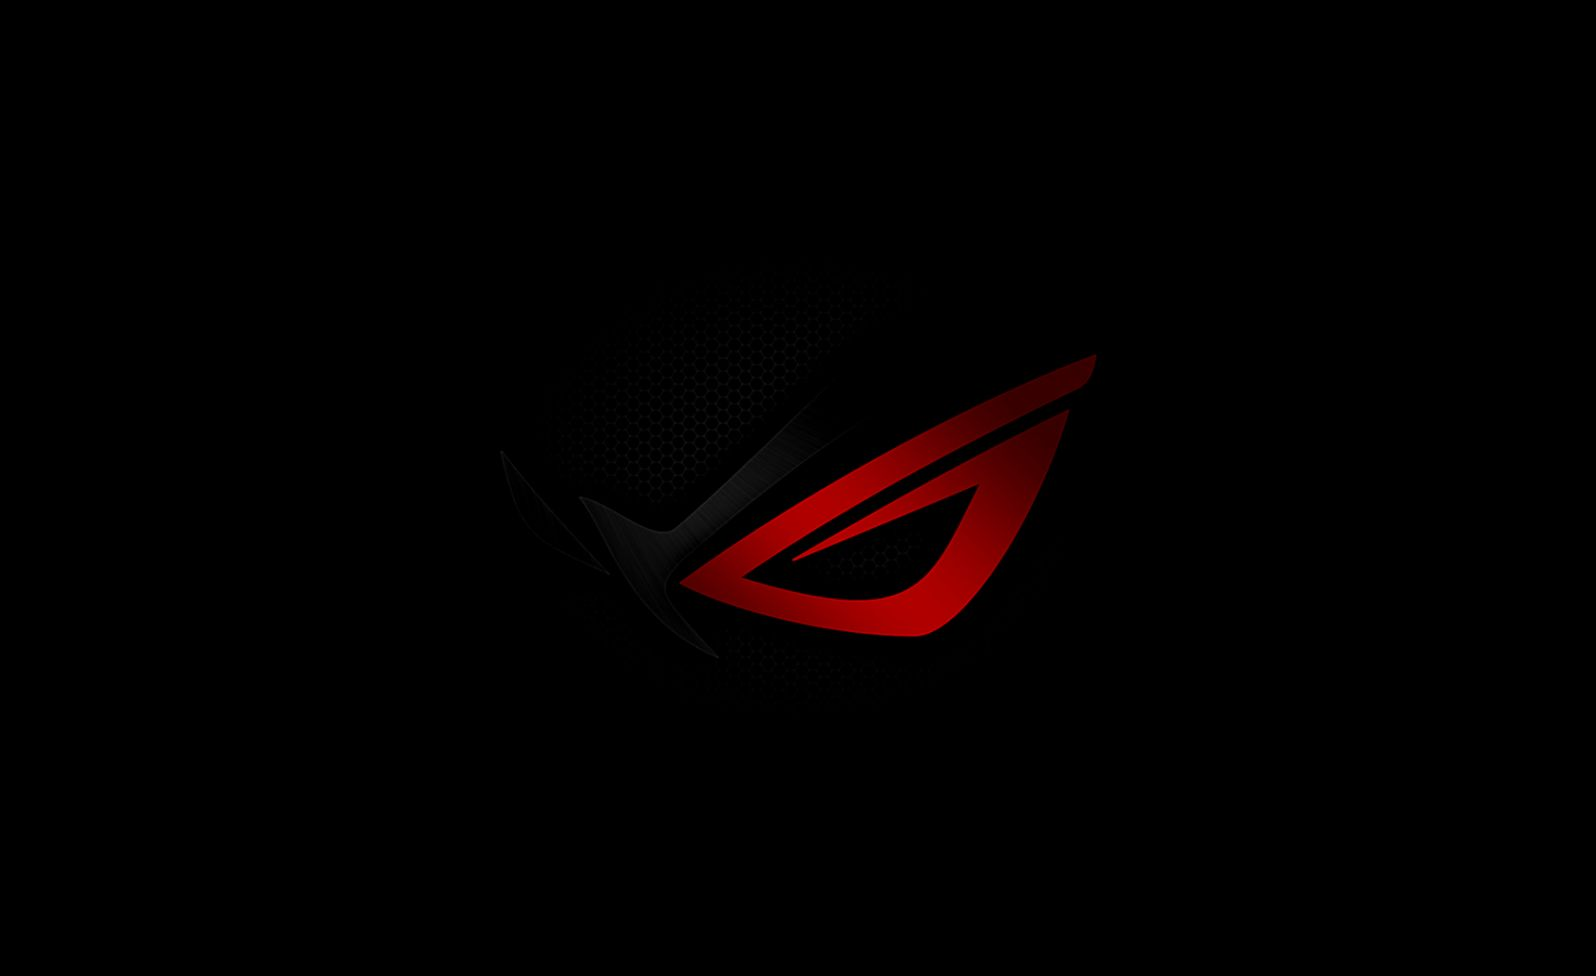 New Asus Rog Logo Hd Wallpaper High Definitions Wallpapers